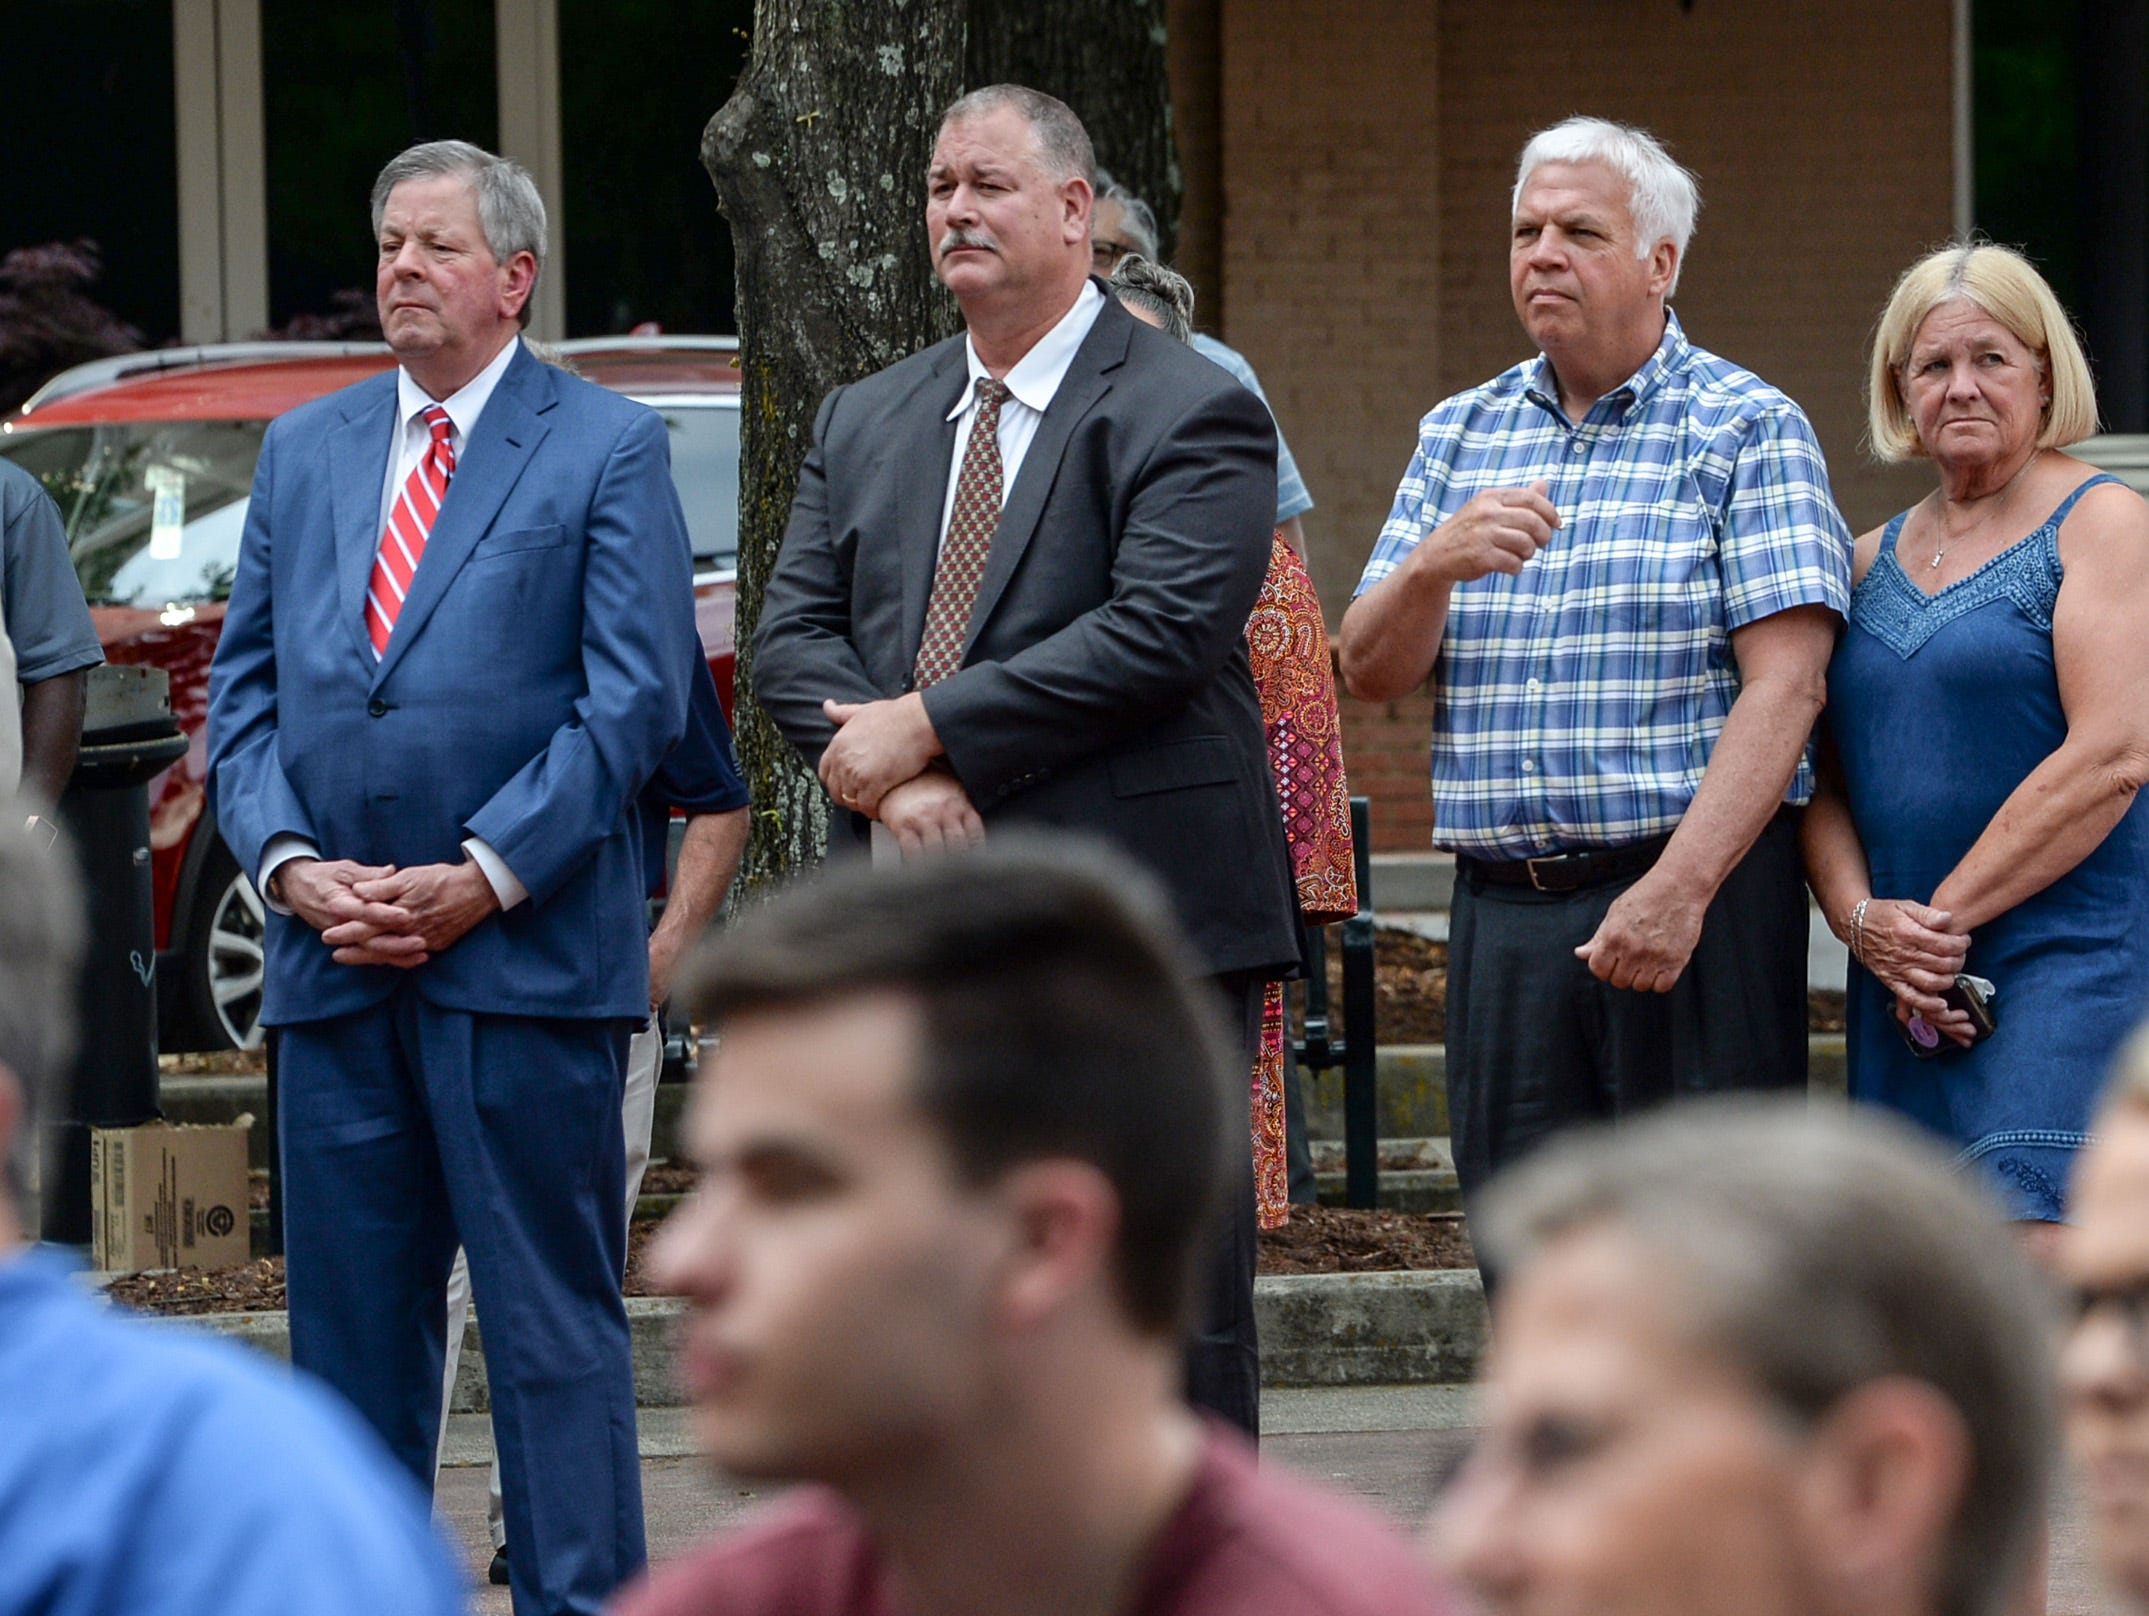 Richard Shirley, left, Anderson County Clerk of Courts, David Wagner, 10th Circuit Solicitor, and Greg Shore, Anderson County Cornoner, listen to keynote speaker Jackie Swindler, Director of the State Criminal Justice Academy, speaking during the 2019 Peace Officer Memorial Service Wednesday May 15, 2019. People attended to help honor the lives of officers lost in the line of duty.